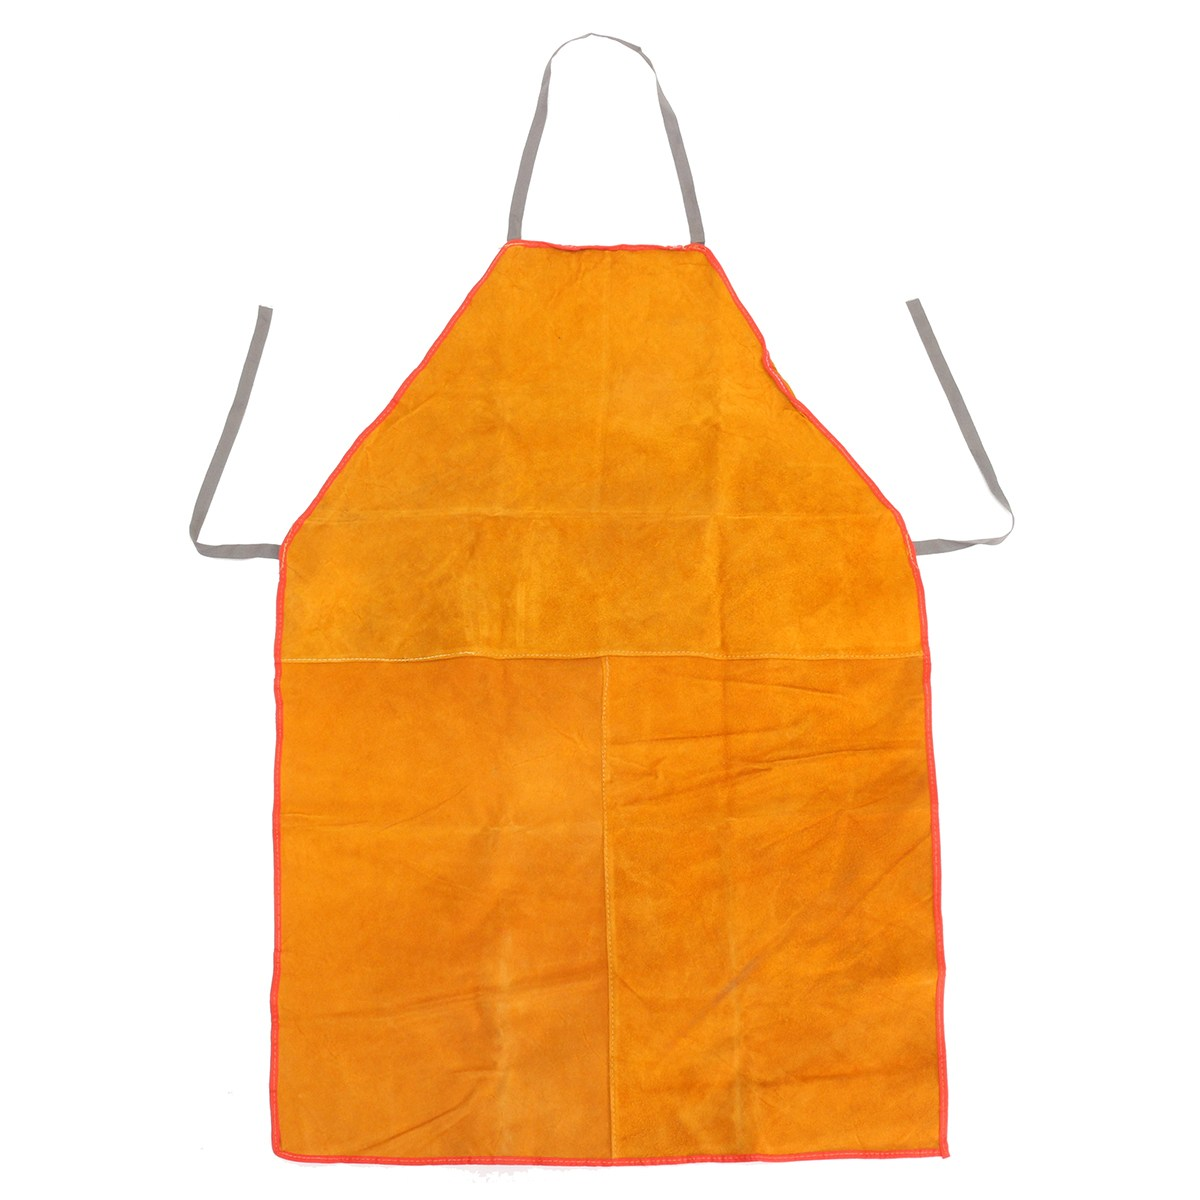 NEW Welders Welding Apron Chrome Leather Tan Heavy Duty Blacksmith Workplace Safety Safety Clothing Self Protect new top grade gift pure tan wooden type h chun tan mu shu h kuan